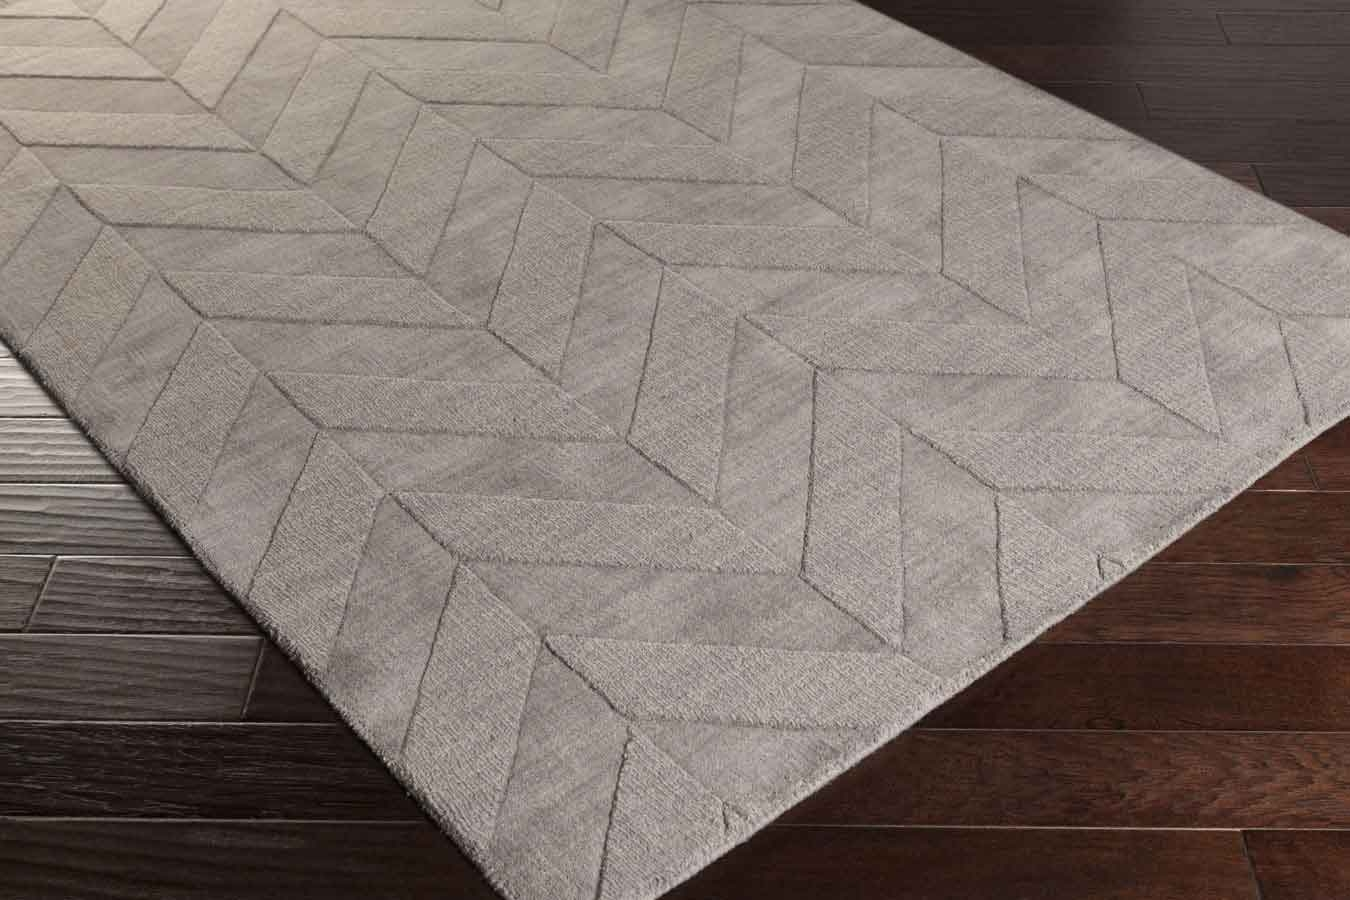 Artistic Weavers Central Park Carrie AWHP4025 Grey Area Rug